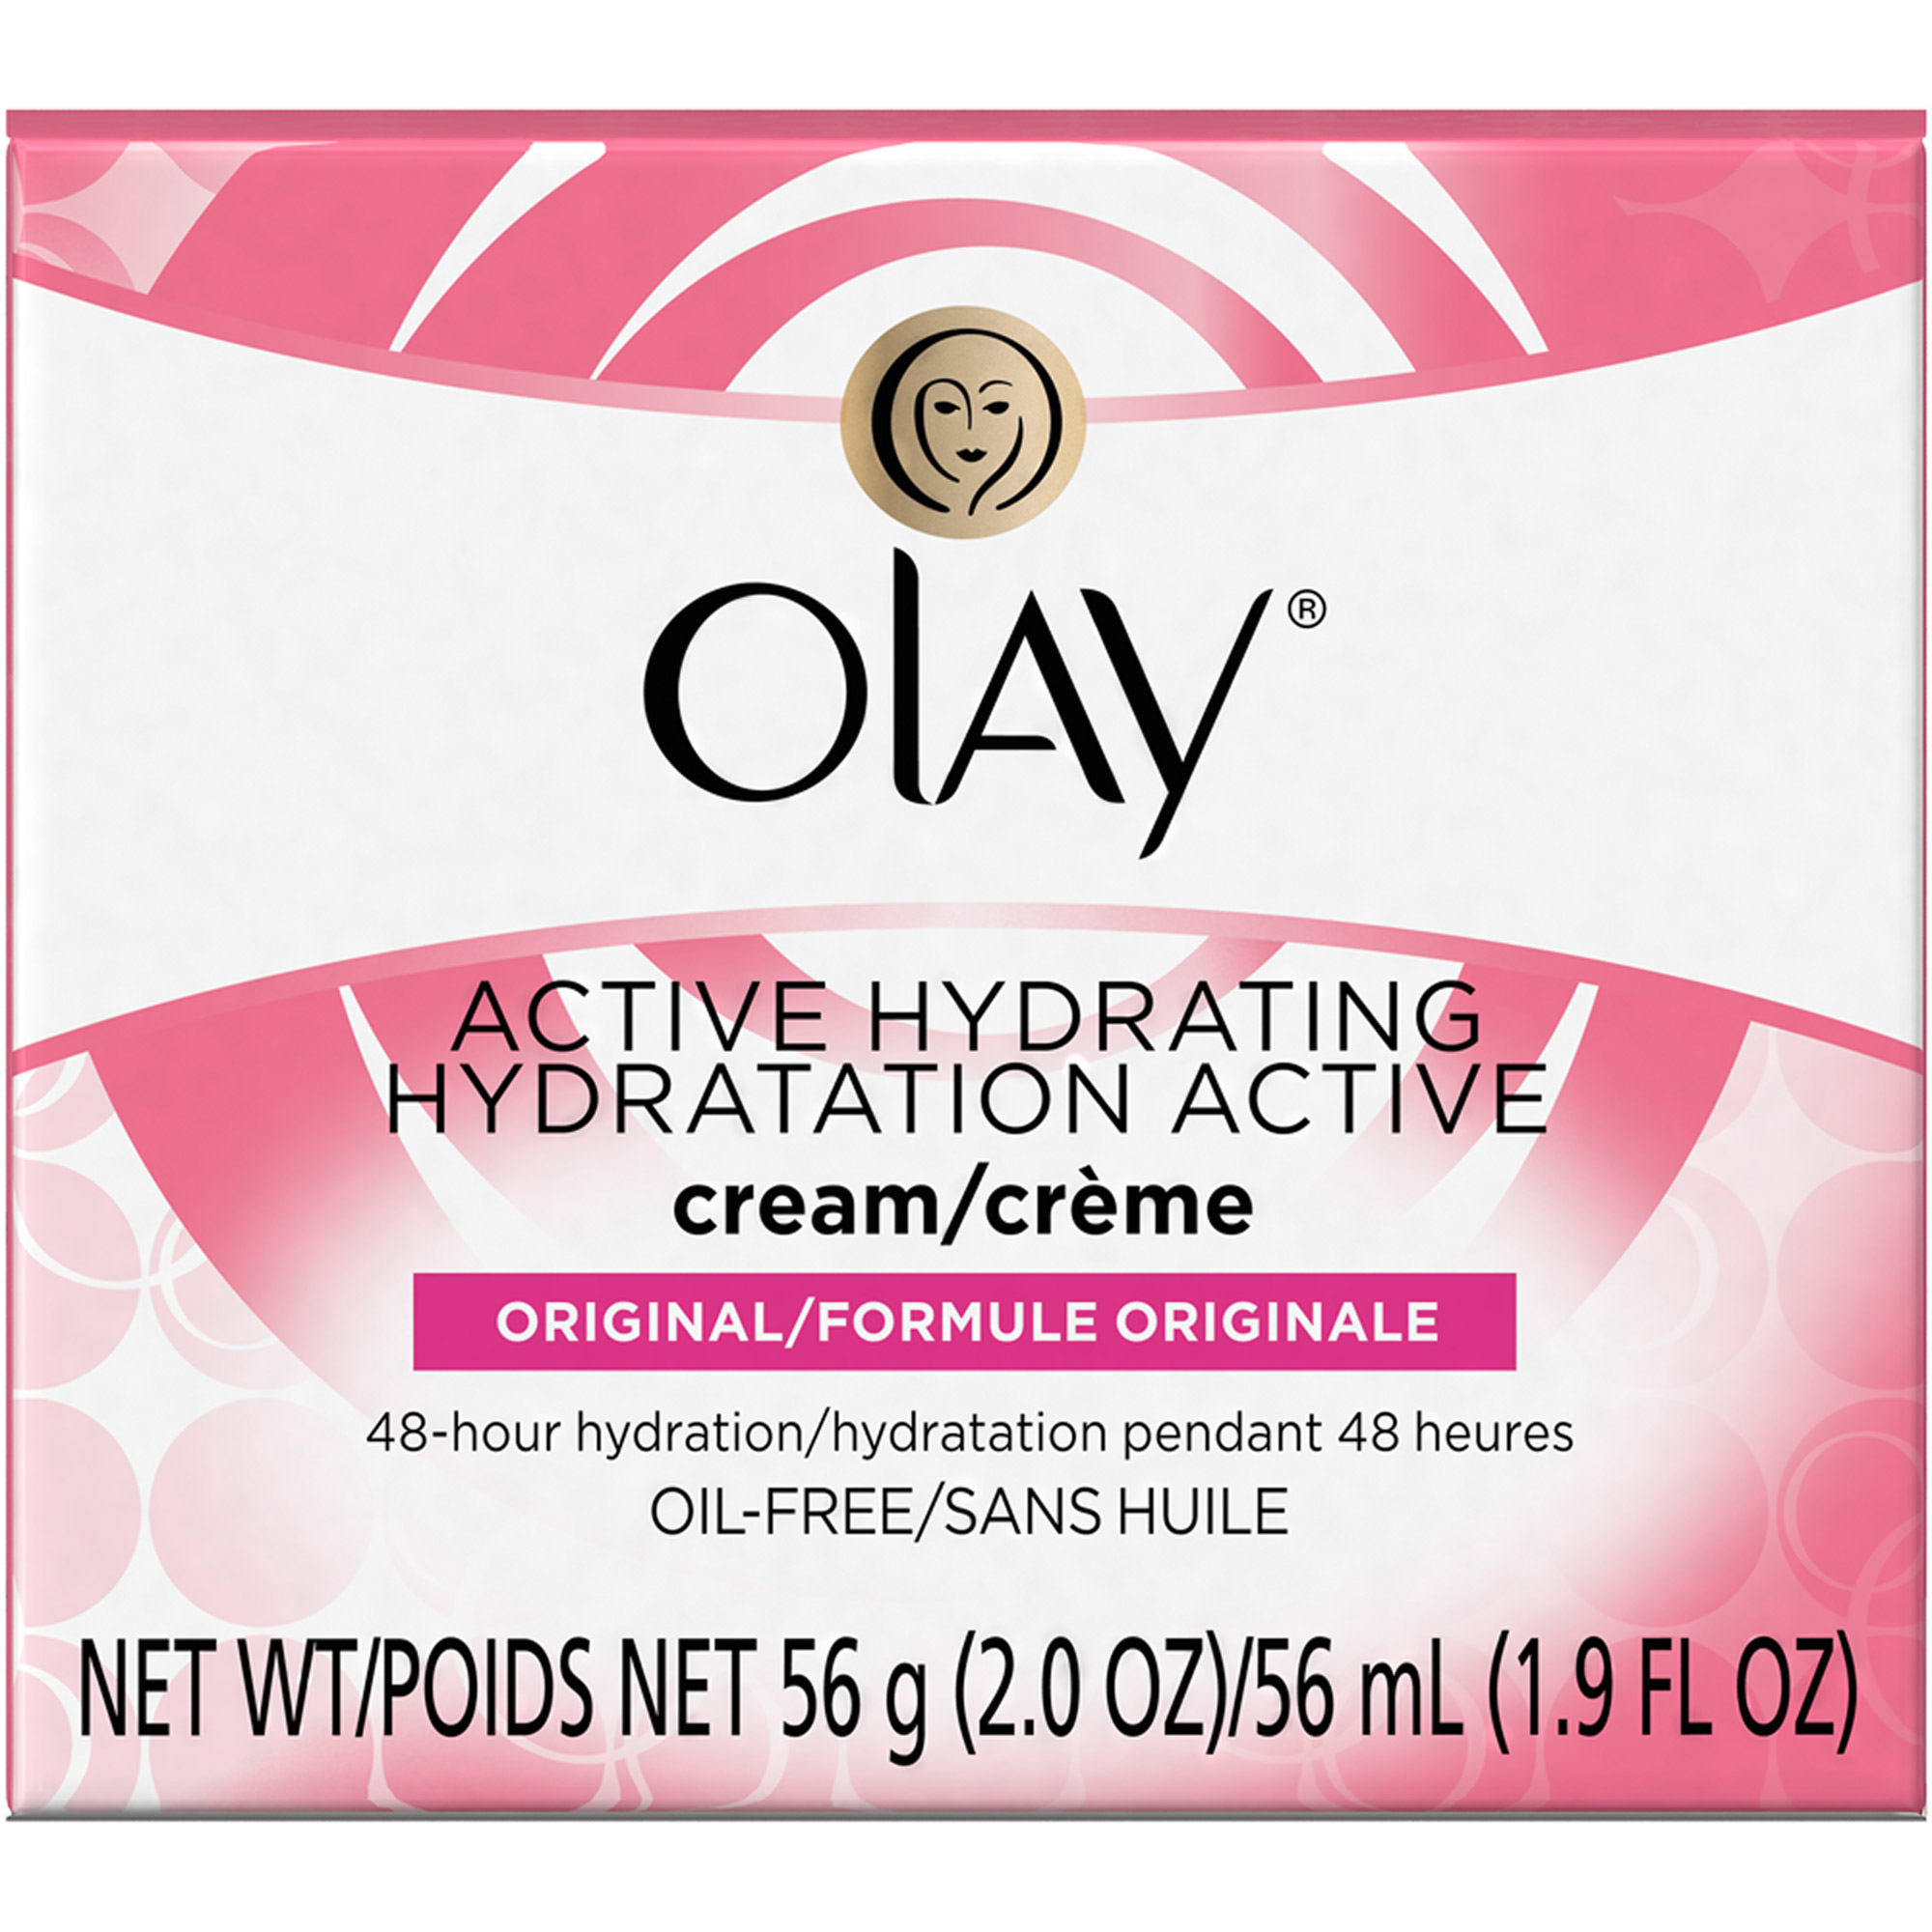 Olay Active Hydrating Facial Moisturizer Cream, 2.0 oz